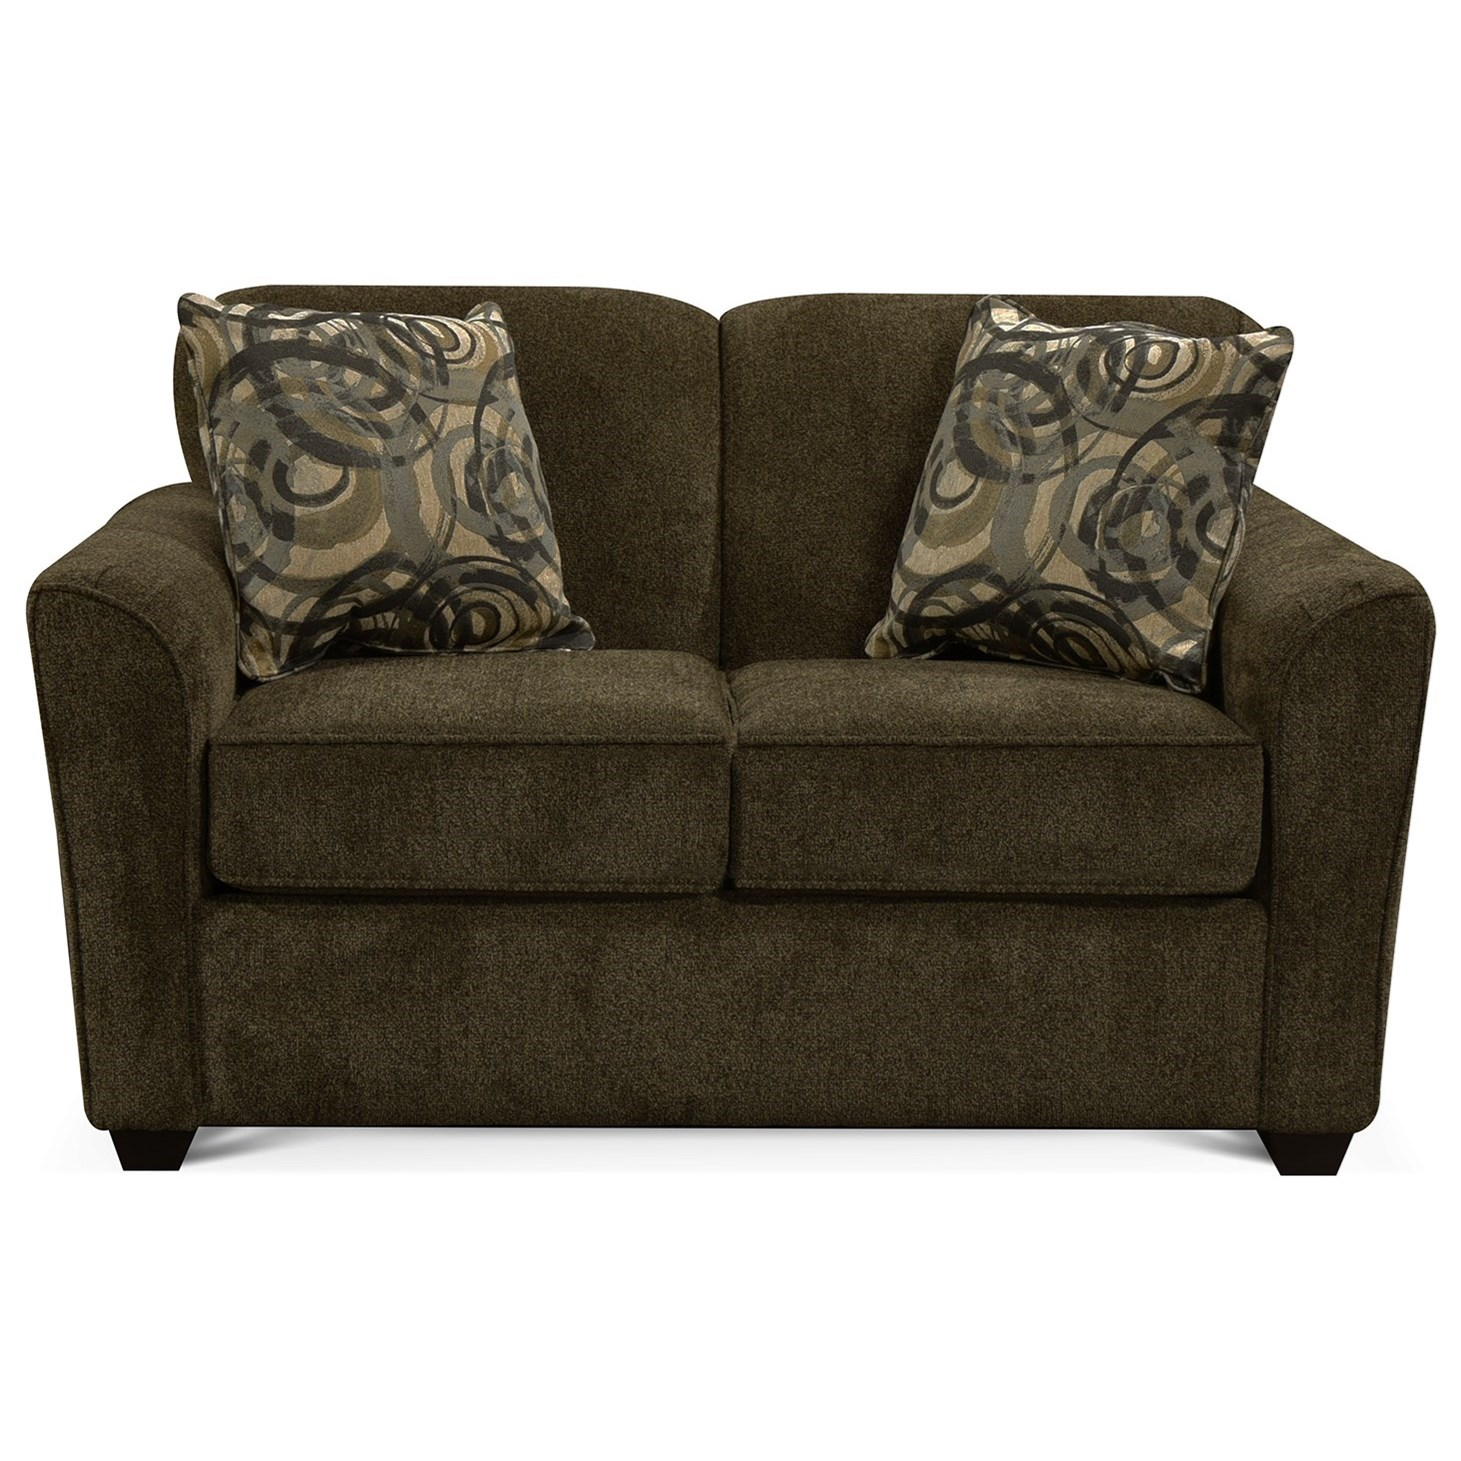 Smyrna Loveseat by England at Esprit Decor Home Furnishings